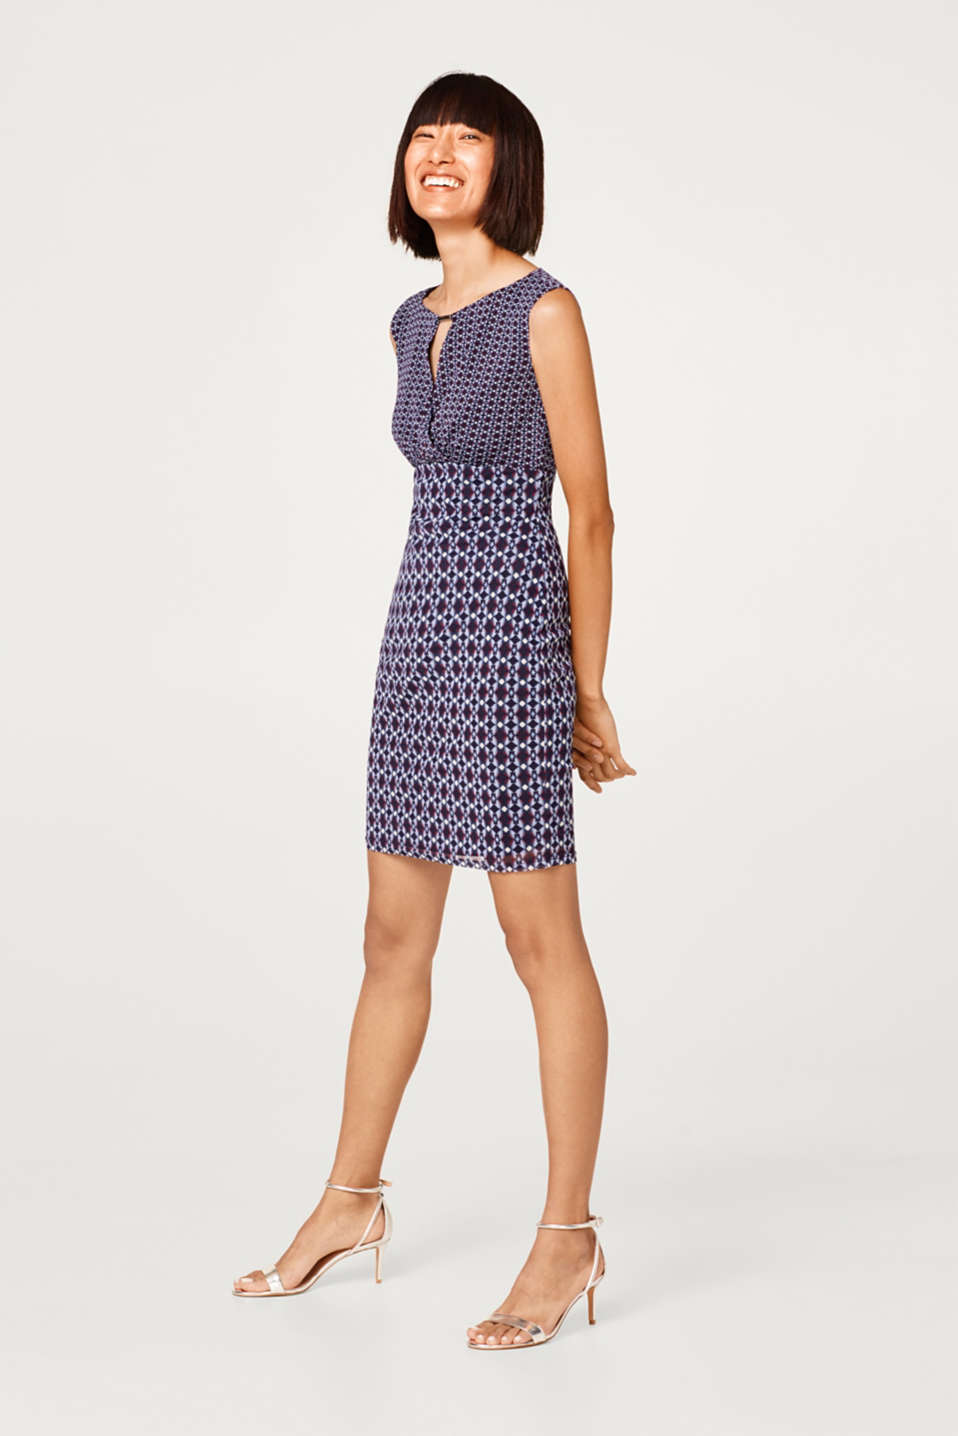 Esprit - Mixed pattern dress made of lightweight mesh